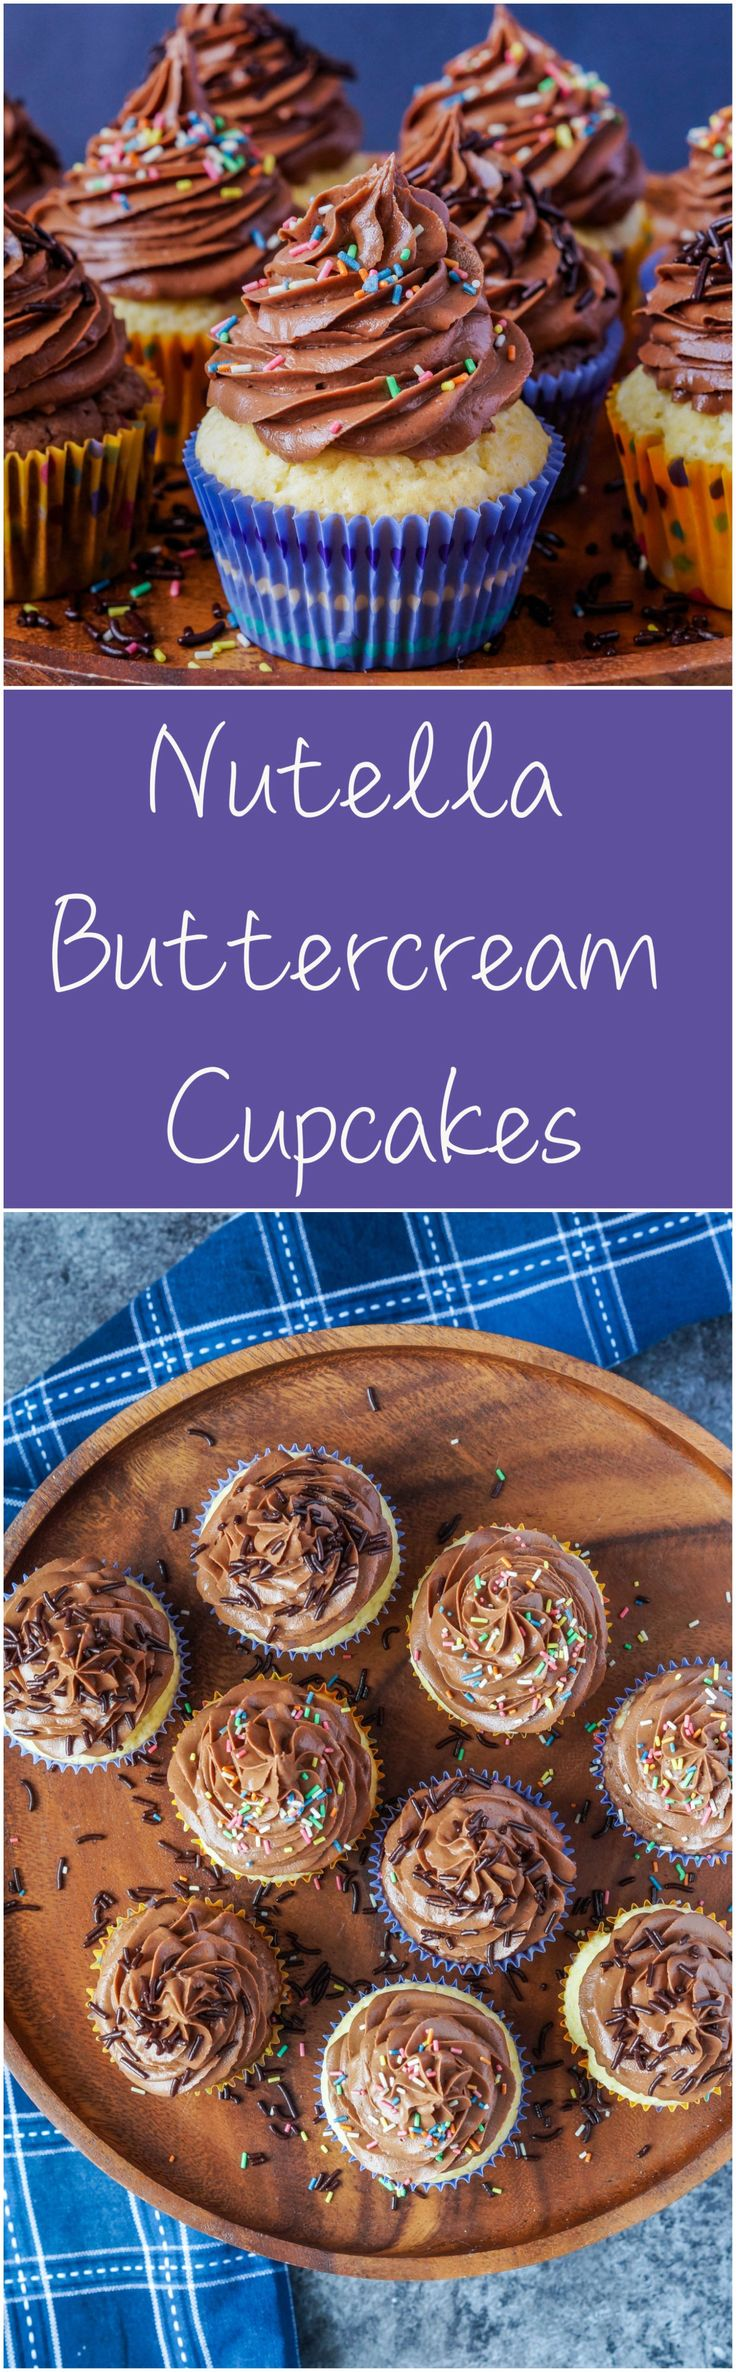 Nutella Buttercream Cupcakes  #nutella #chocolate #cake #cupcake #buttercream #frosting #recipe #sprinkles #dessert